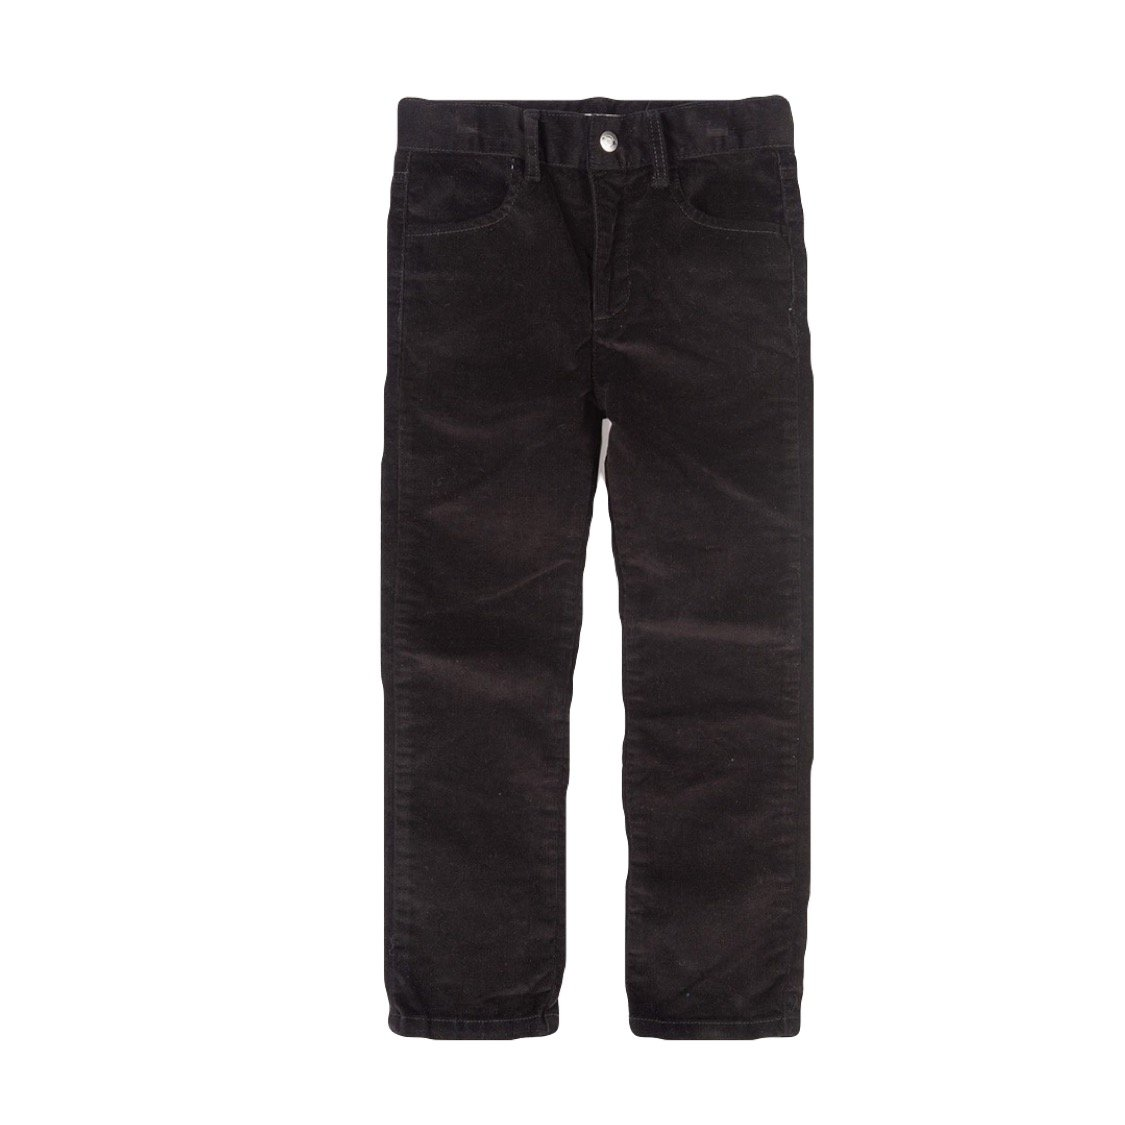 Appaman - Black Skinny Cords Pants Appaman